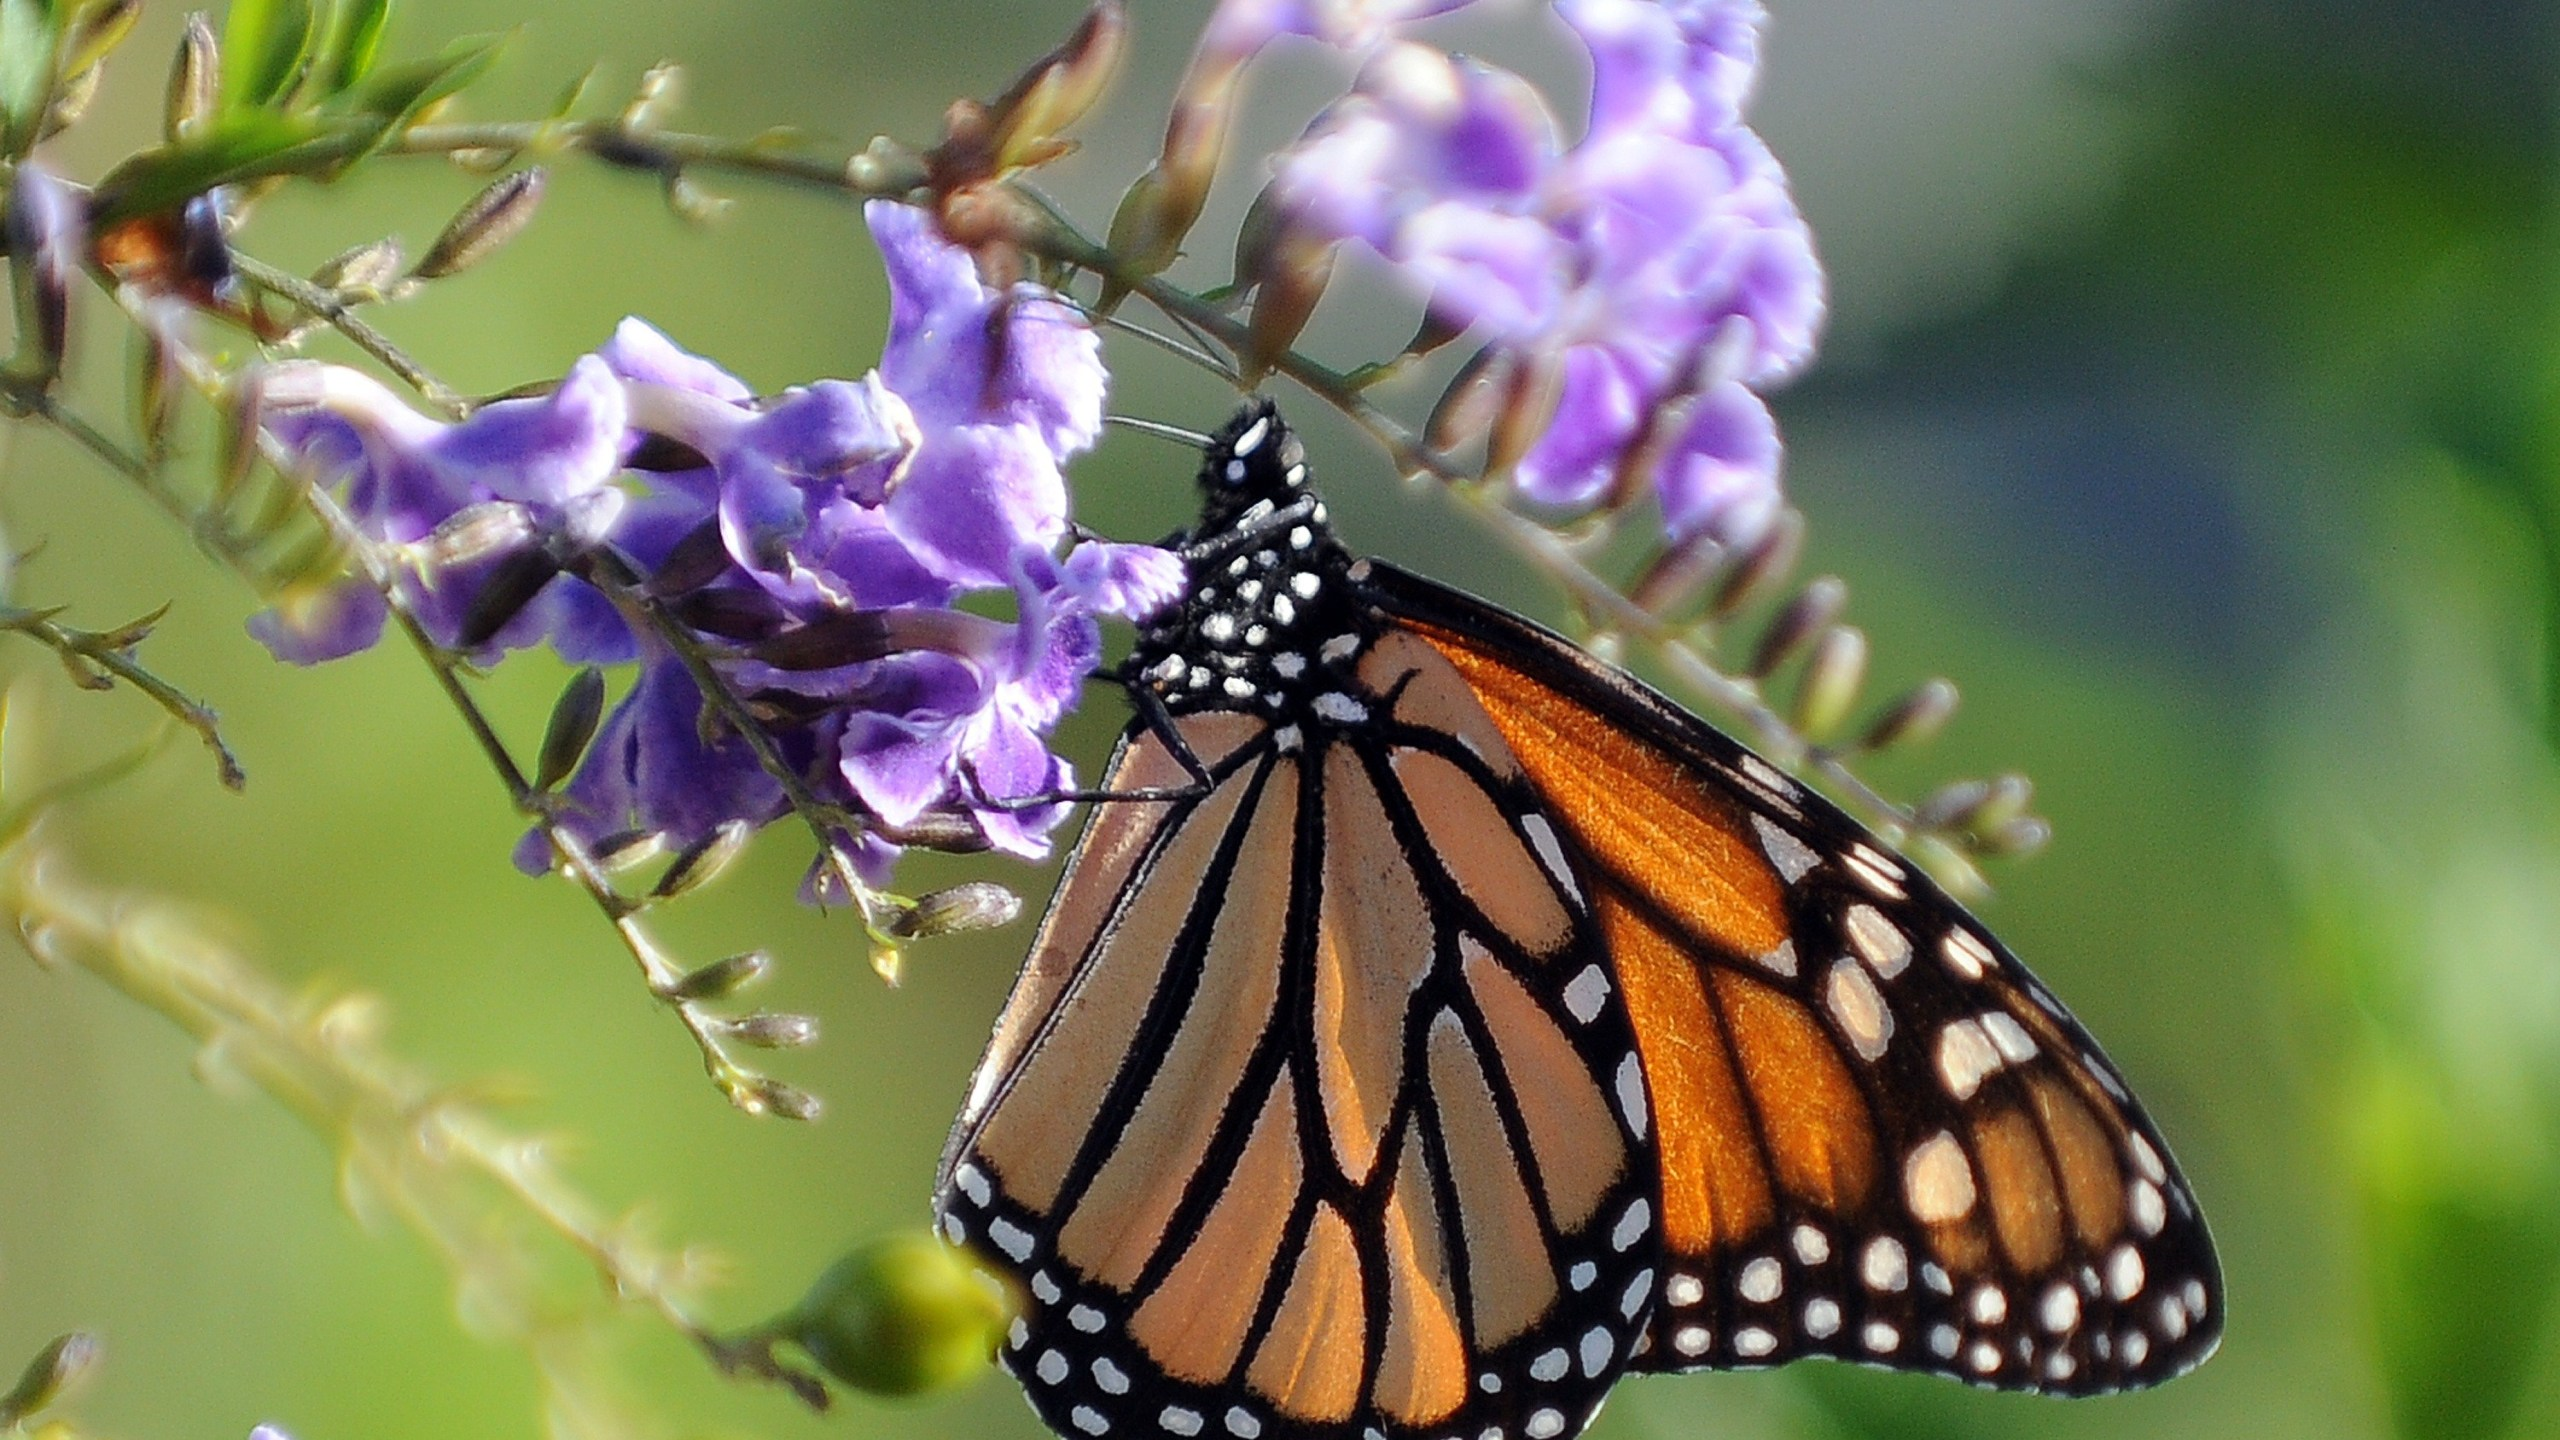 A Monarch butterfly rests on a flower in Los Angeles on Oct. 28, 2010. (Credit: Gabriel Bouys/AFP/Getty Images)